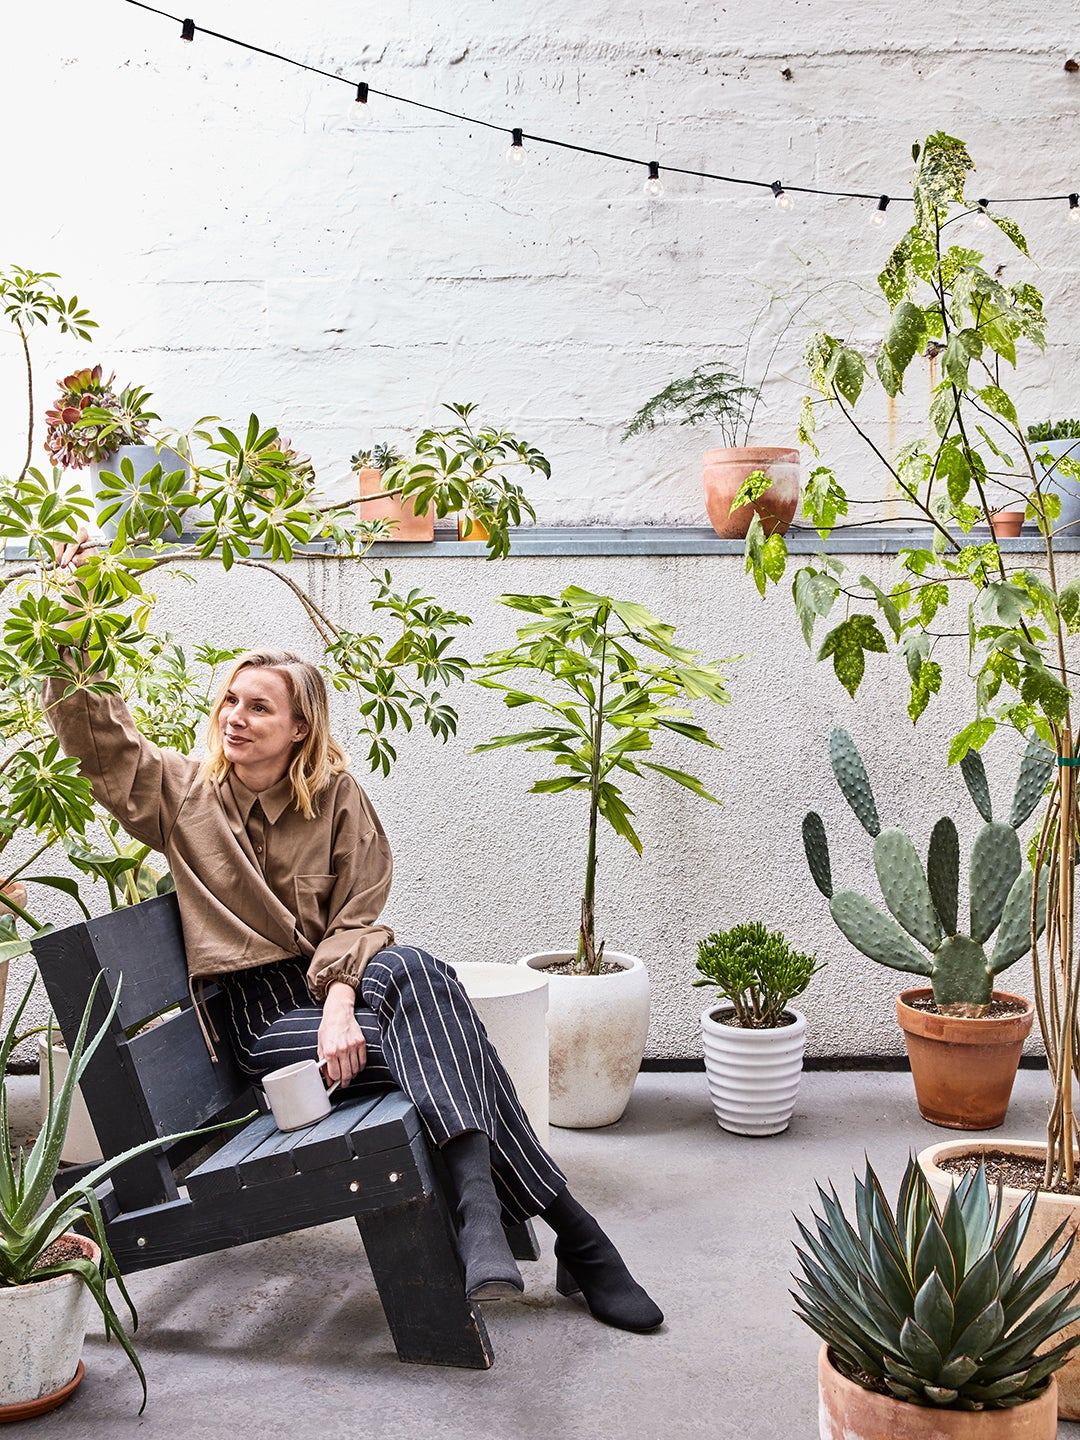 Women on patio surrounded by plants